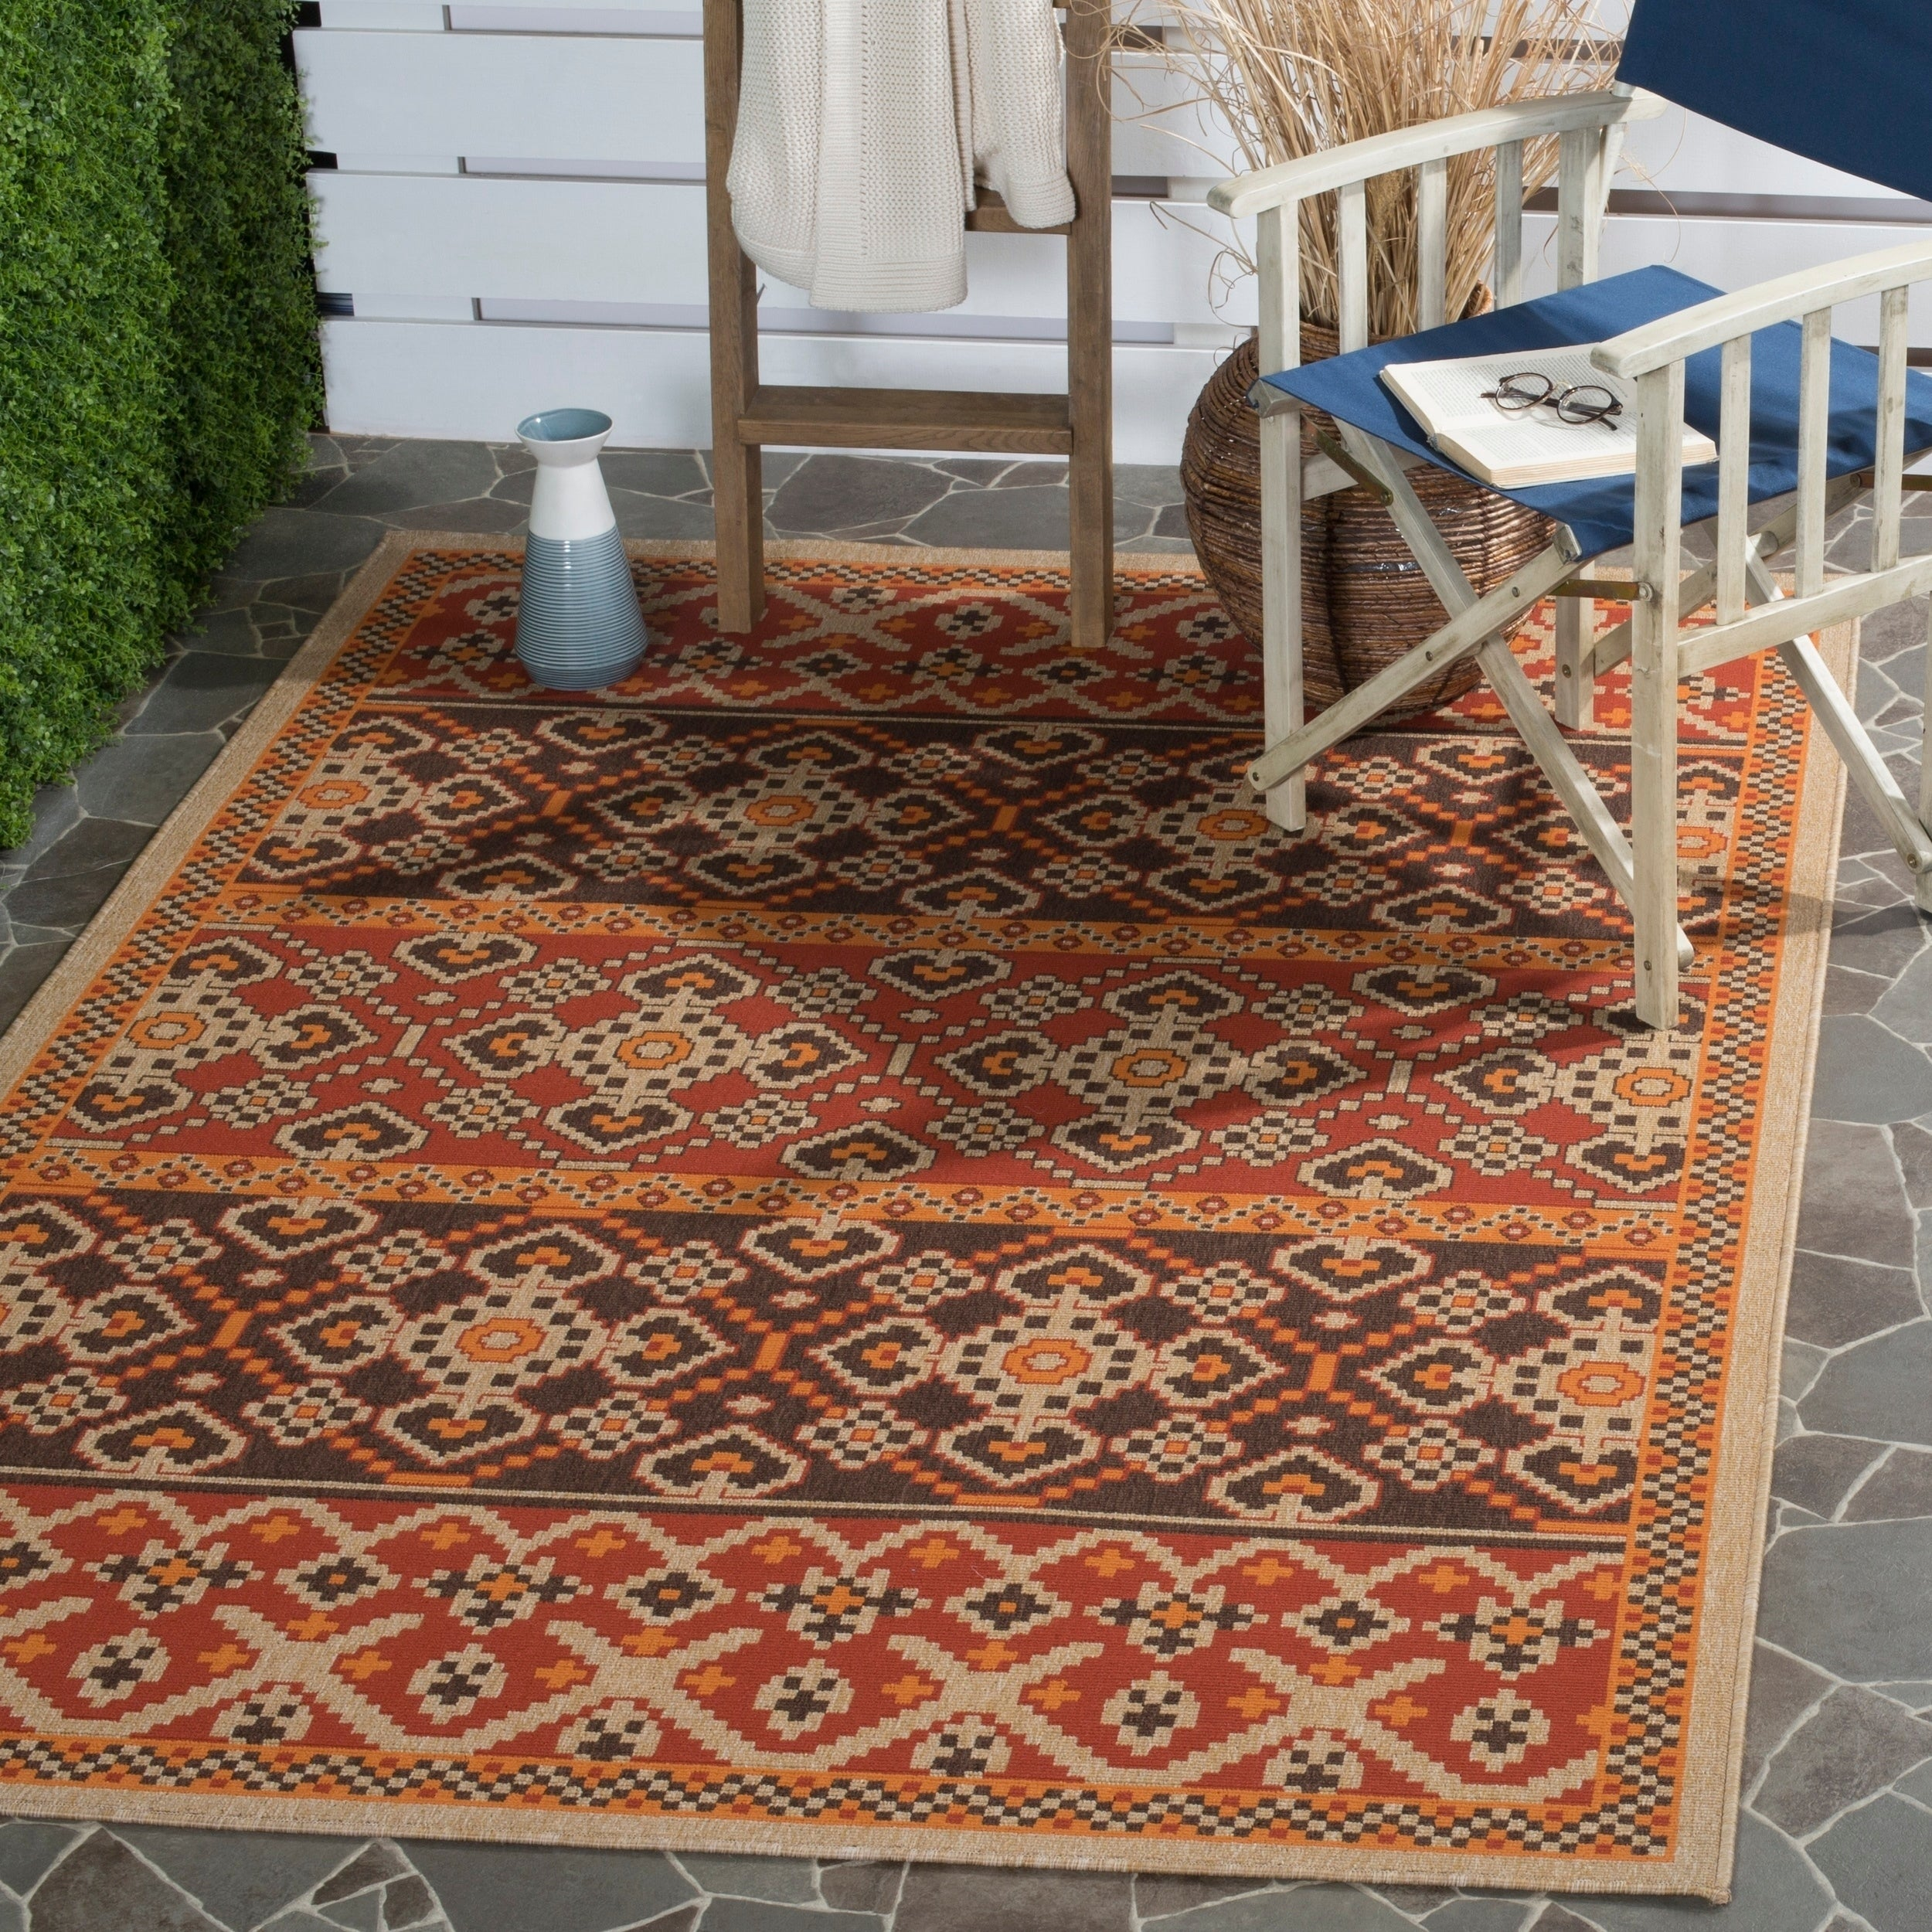 Buy Outdoor Area Rugs Clearance & Liquidation line at Overstock